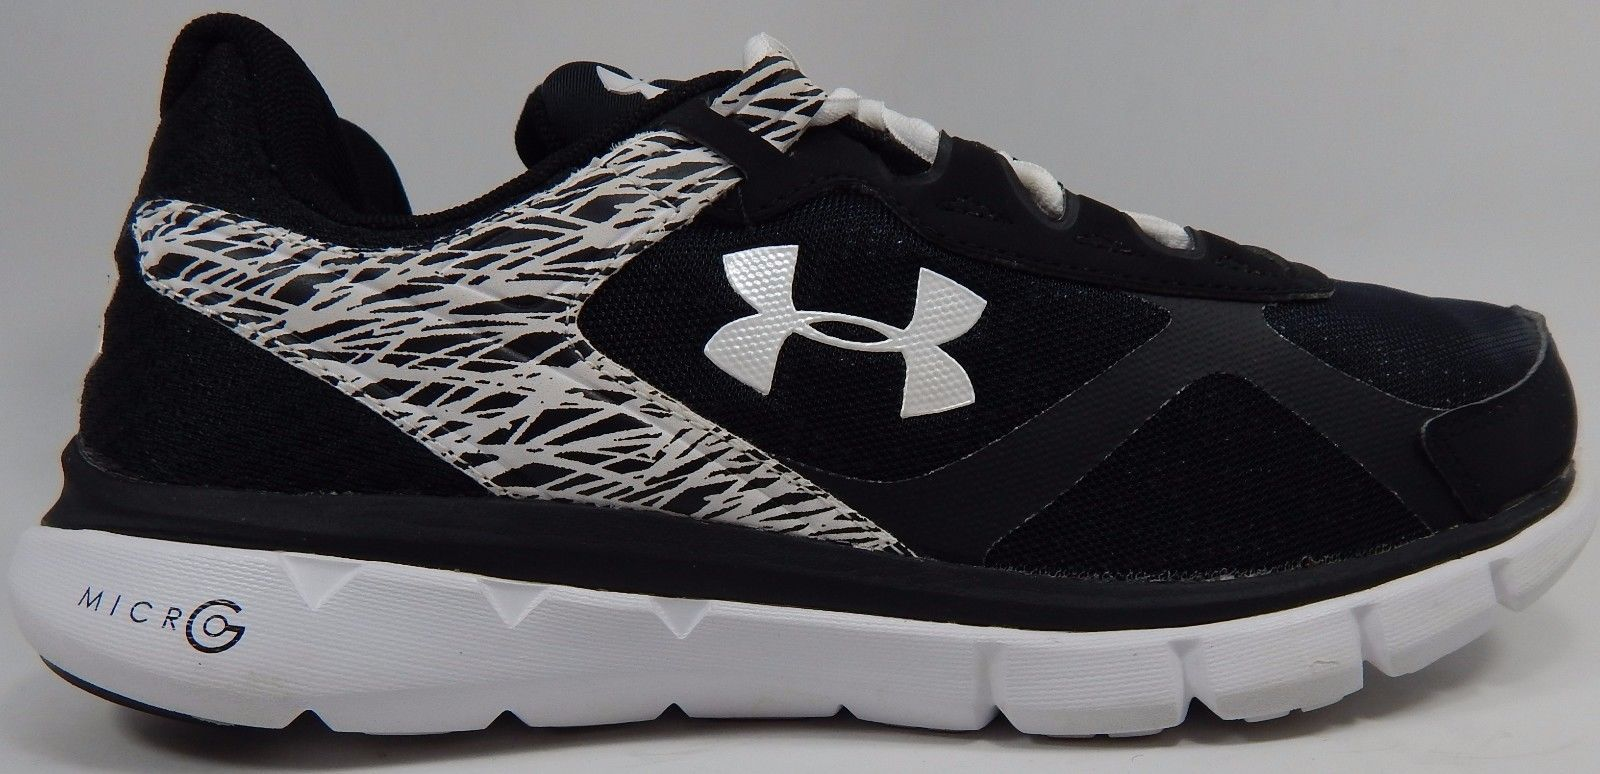 Under Armour Micro G Velocity Women's Running Shoes Size US 9.5 M (B) EU 41